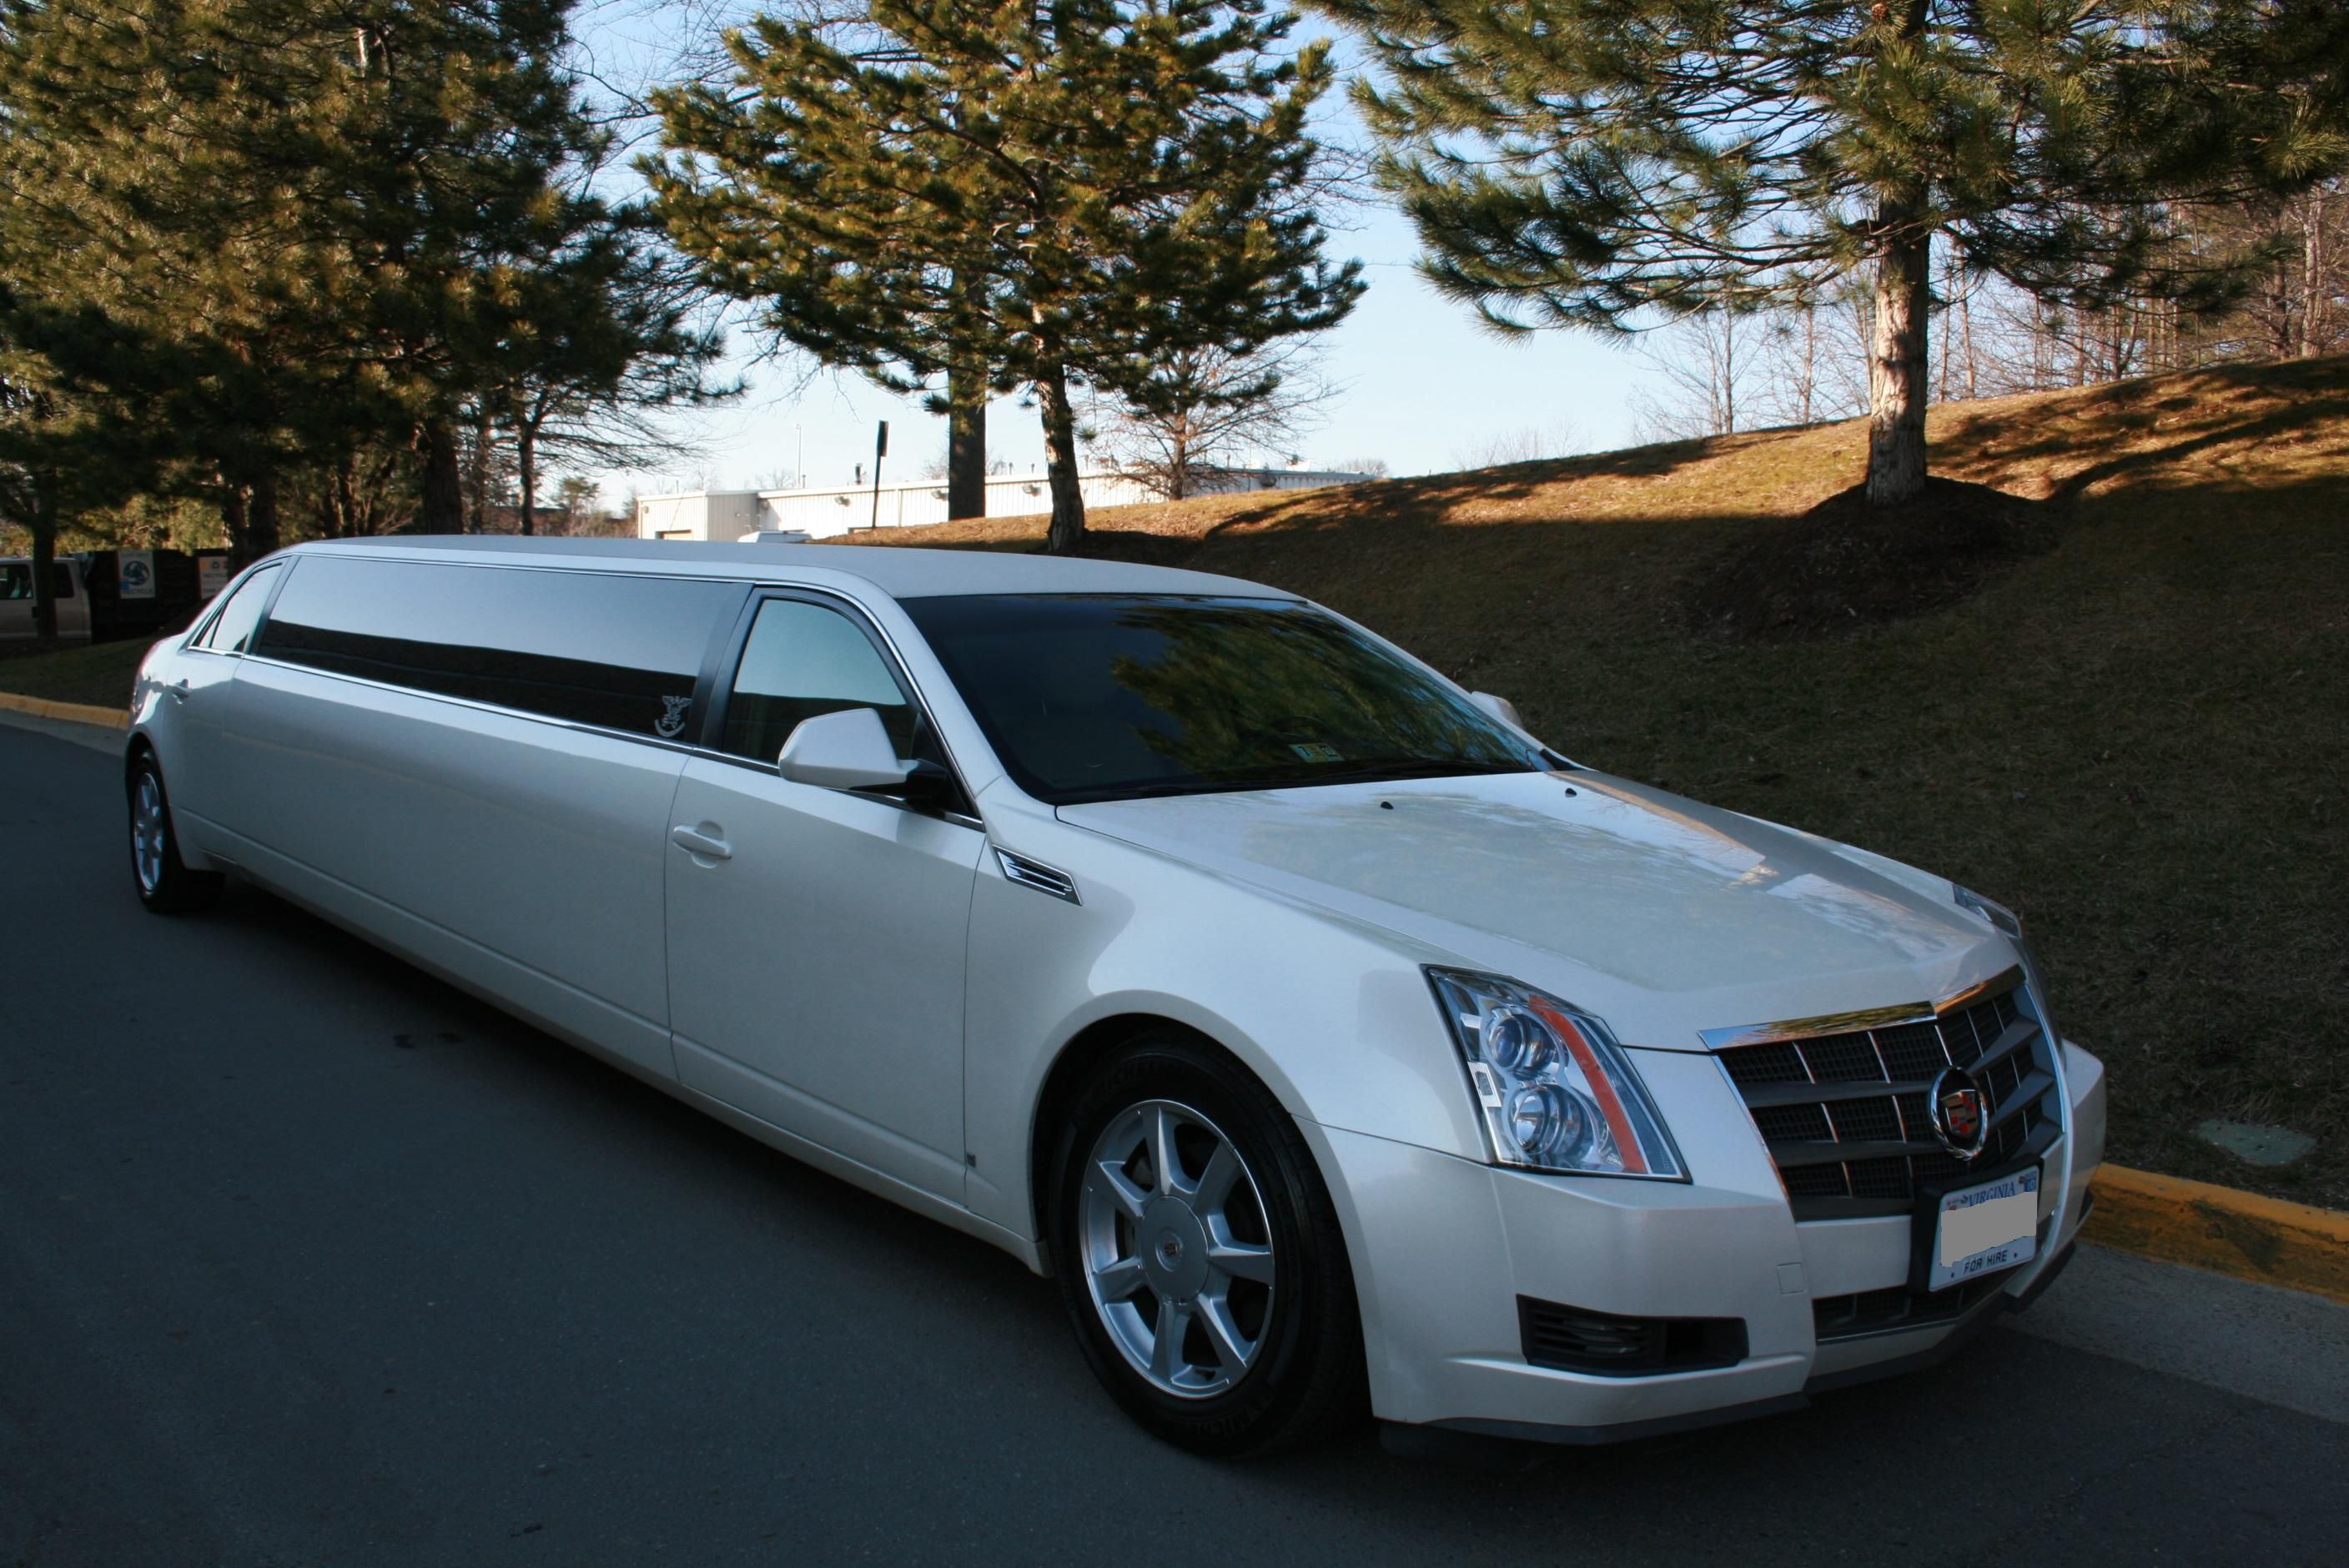 Cadillac Cts Stretch Limousine Cadillac Cts Limousine